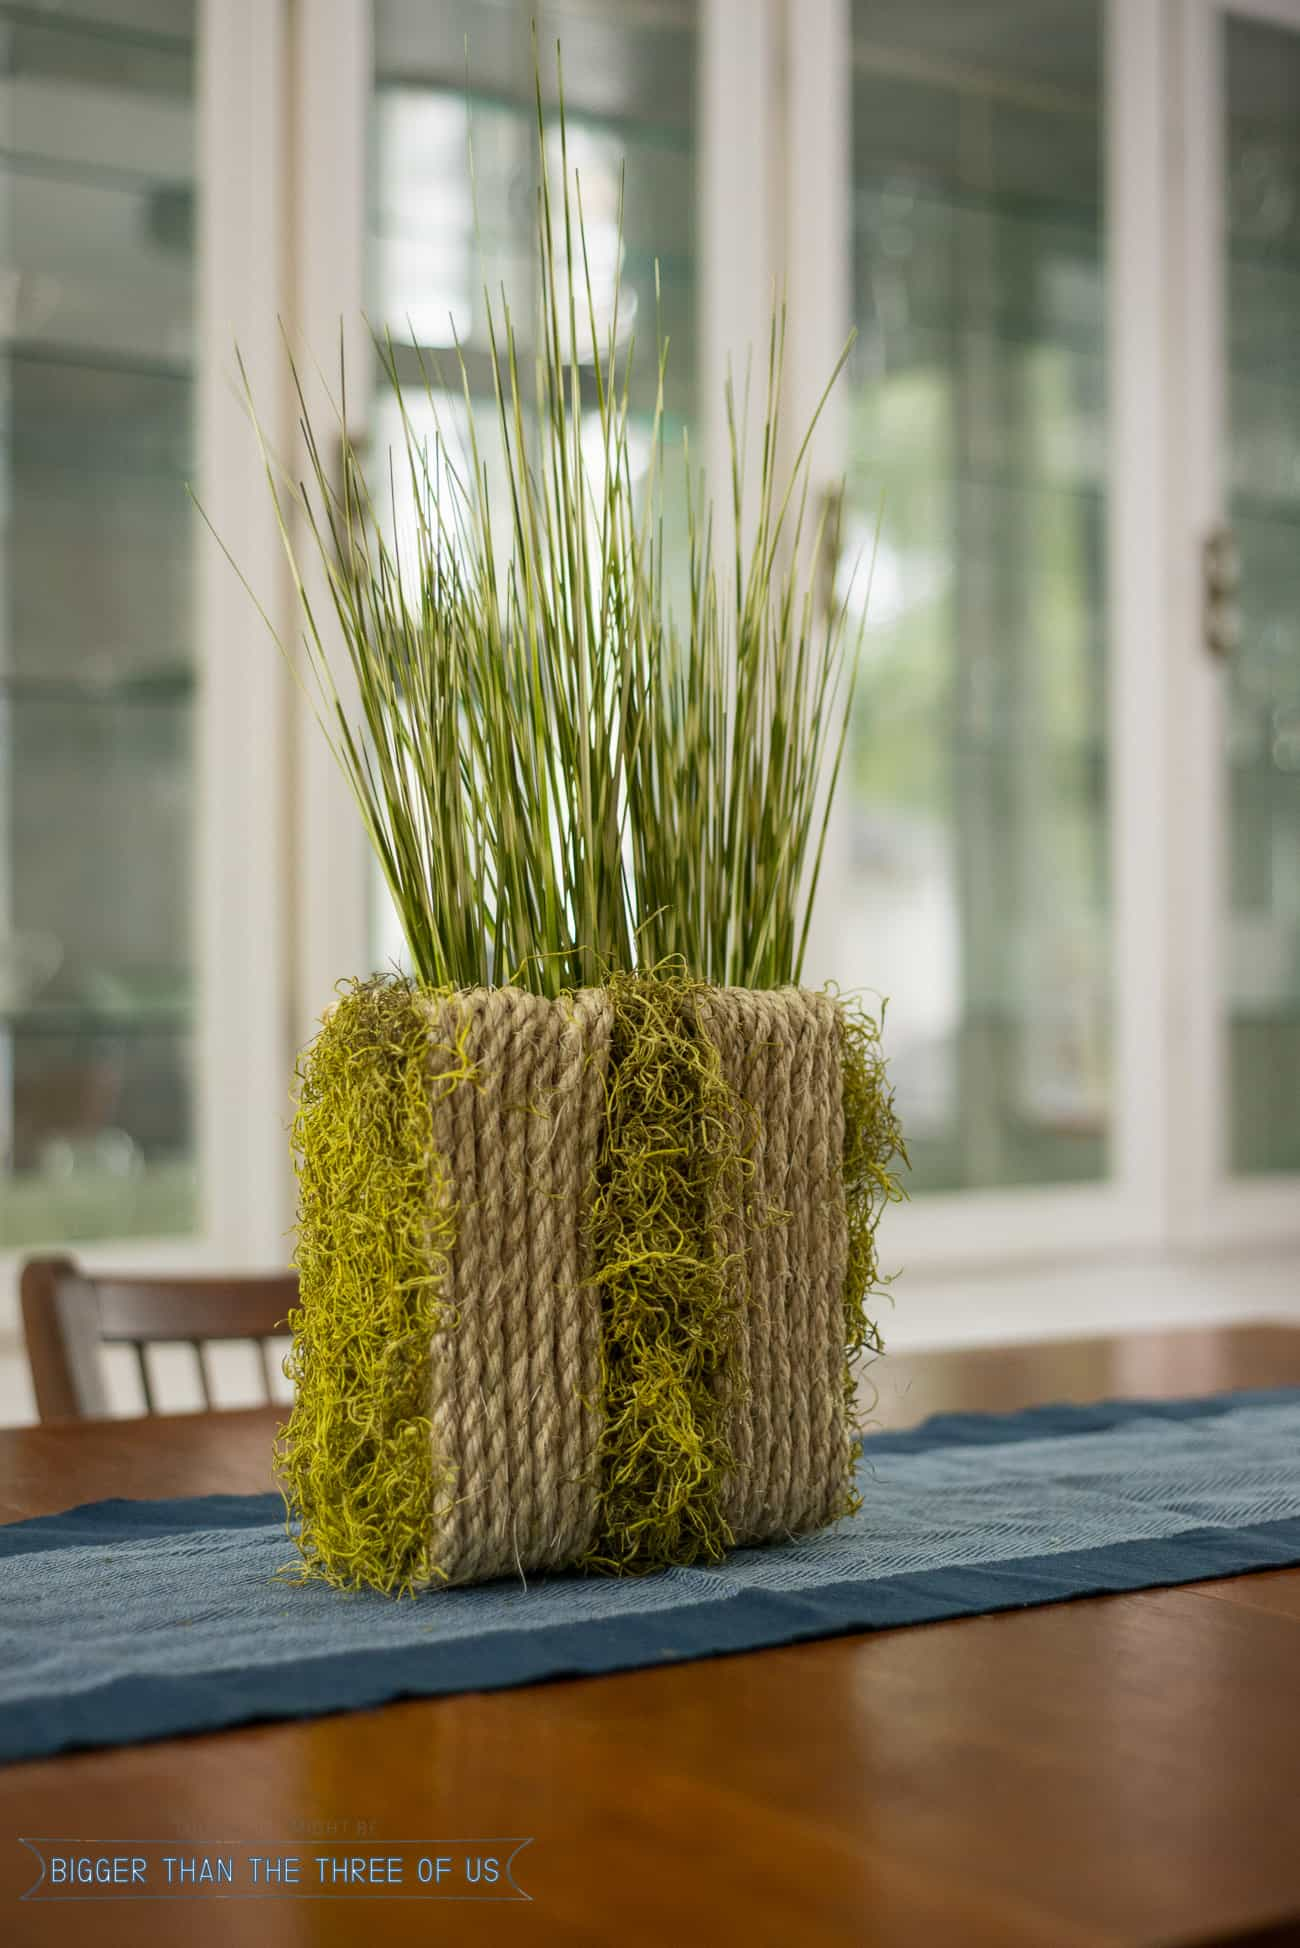 Repurpose that Empty Cereal Box to a Cute Faux Planter in Just a Few Easy Steps!